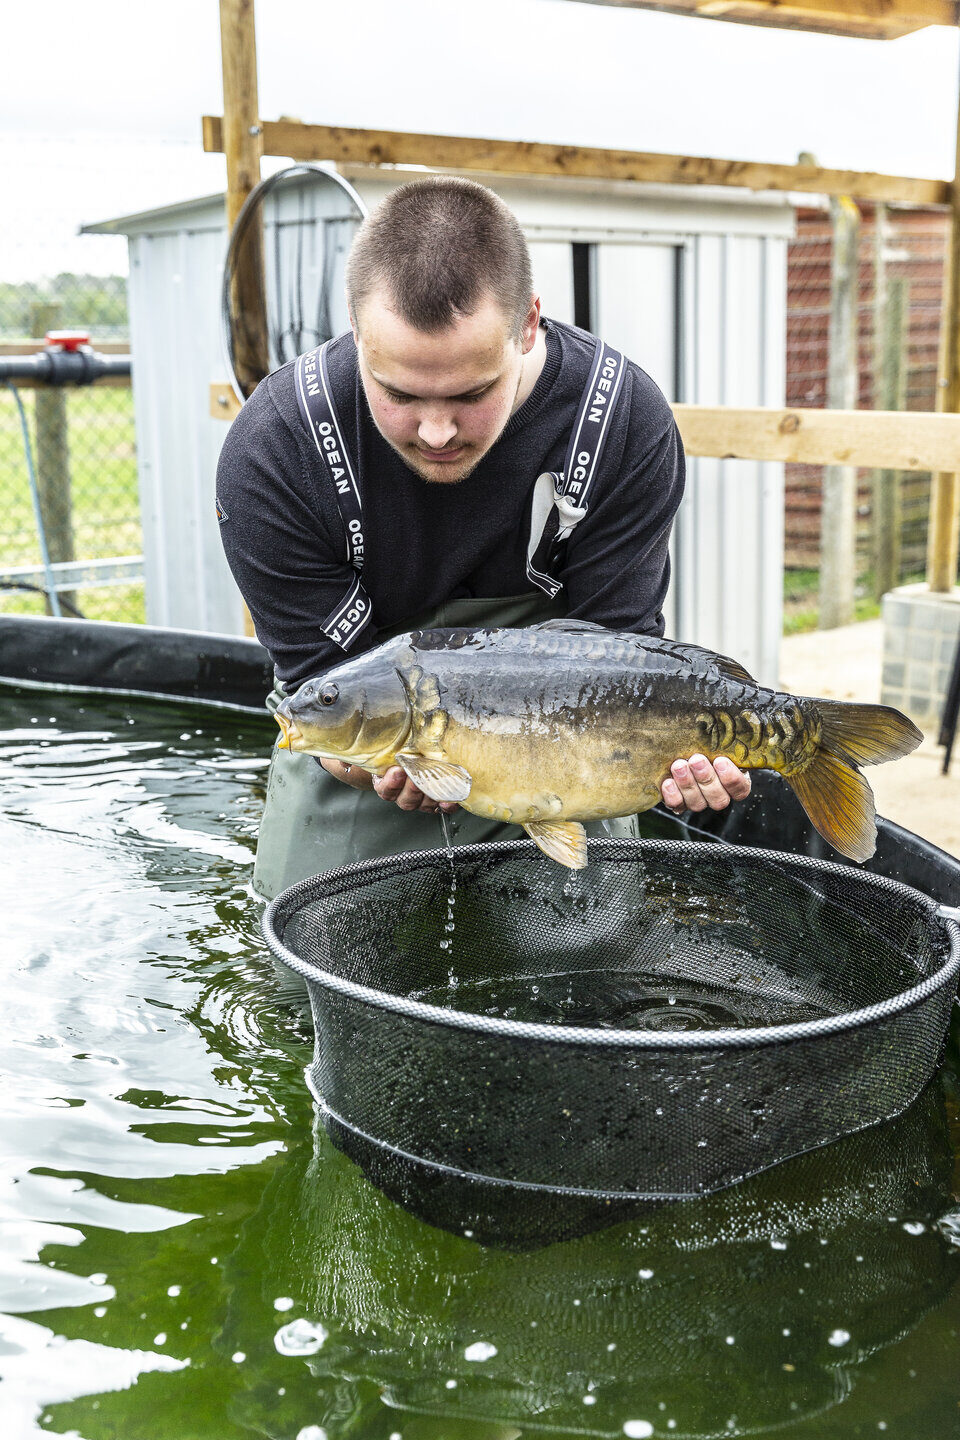 Fisheries student holding fish Shuttleworth College